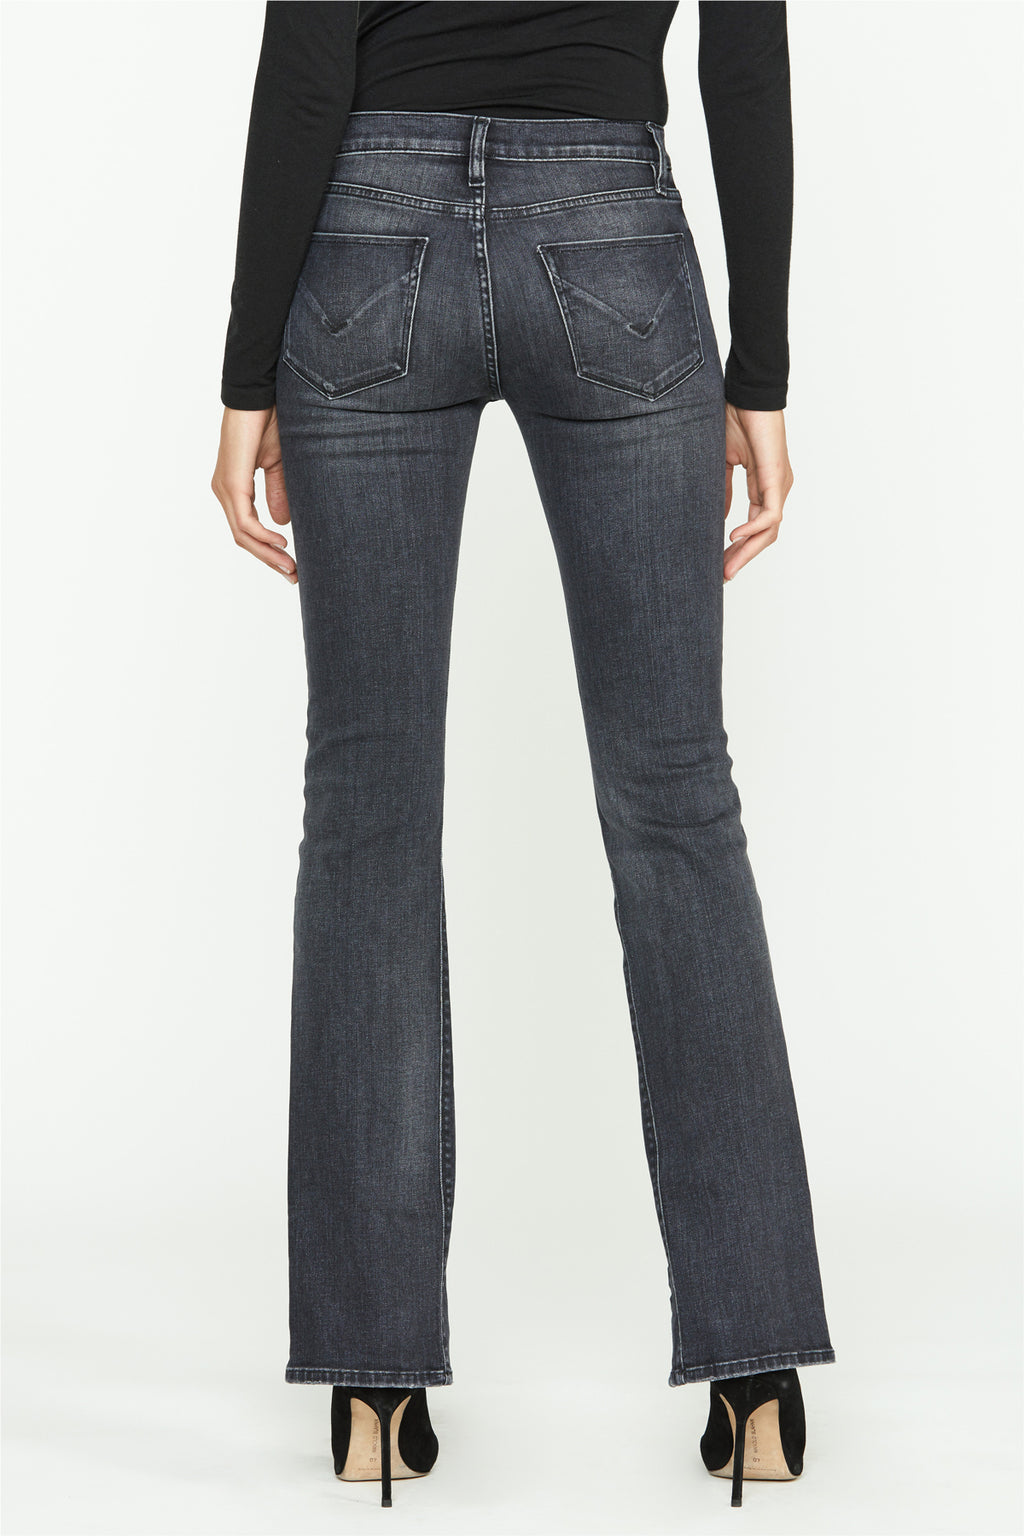 Nico Mid-Rise Front Slit Straight Jean - hudsonjeans